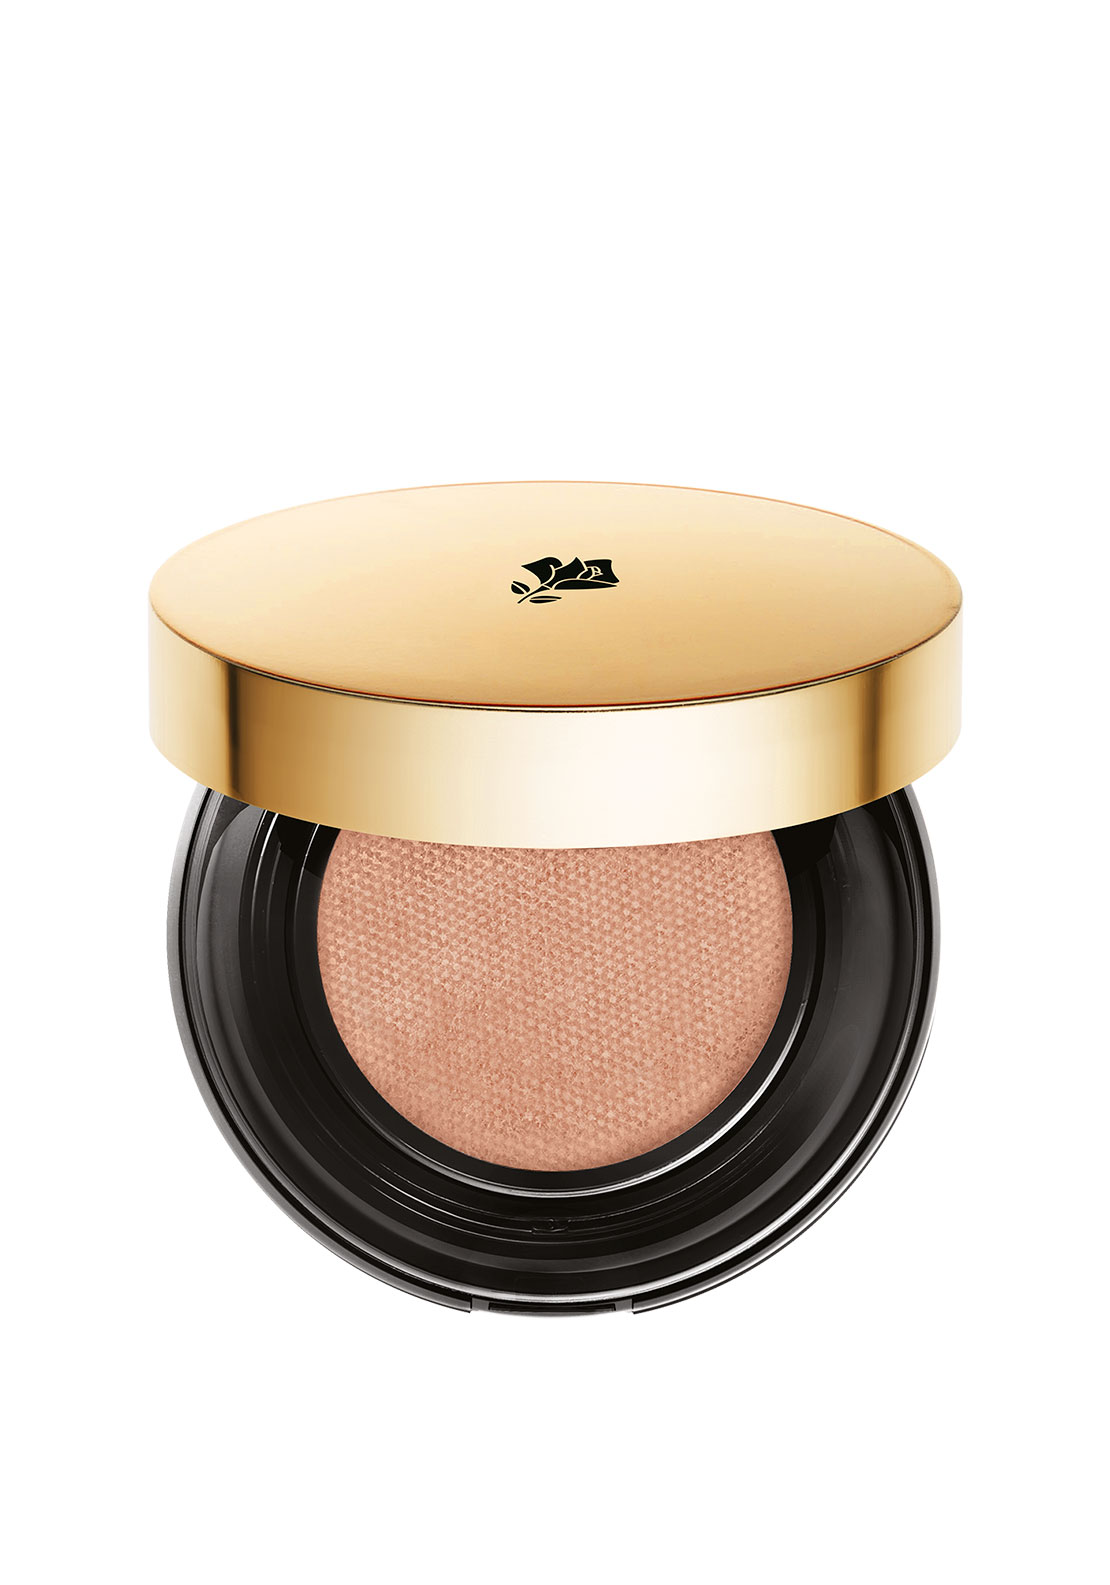 Lancome Teint Idole Ultra Cushion Compact Foundation, Beige Miel